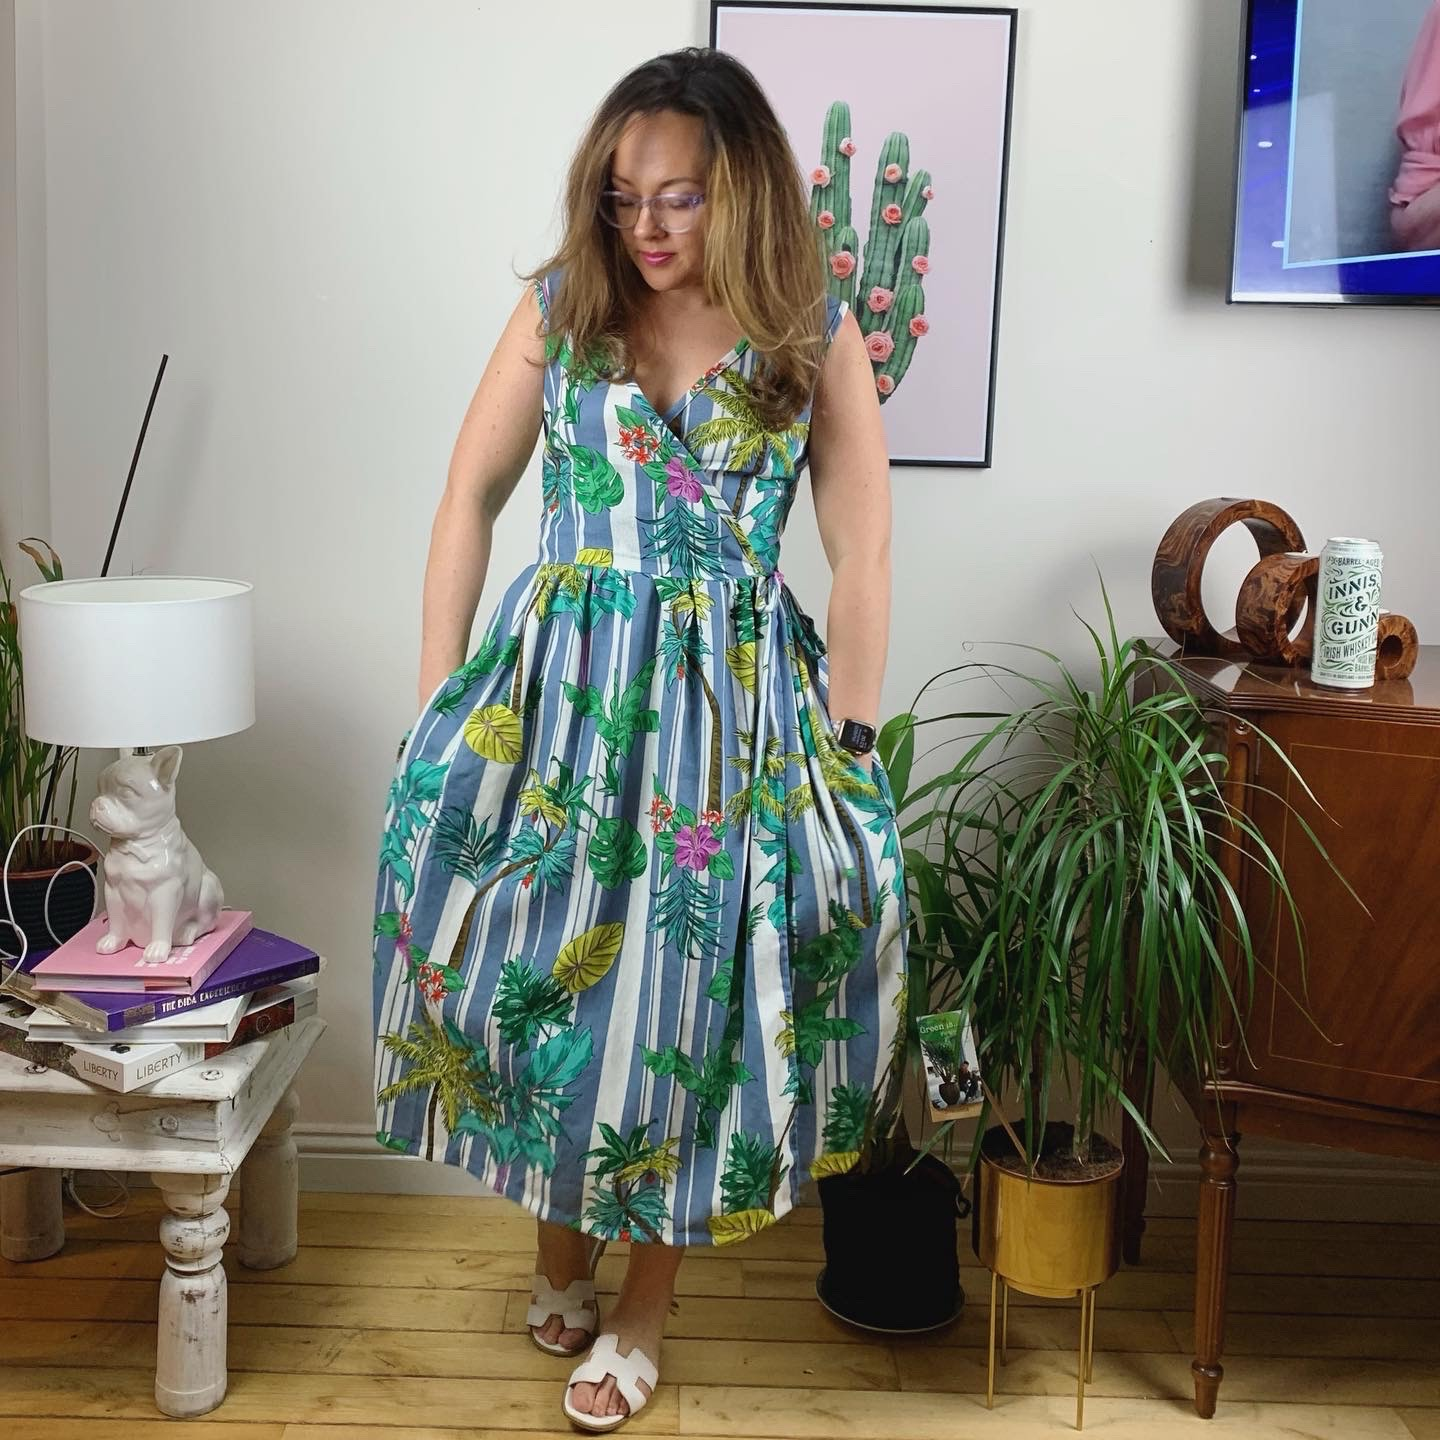 sew along hannah dress - 21st of june outfit